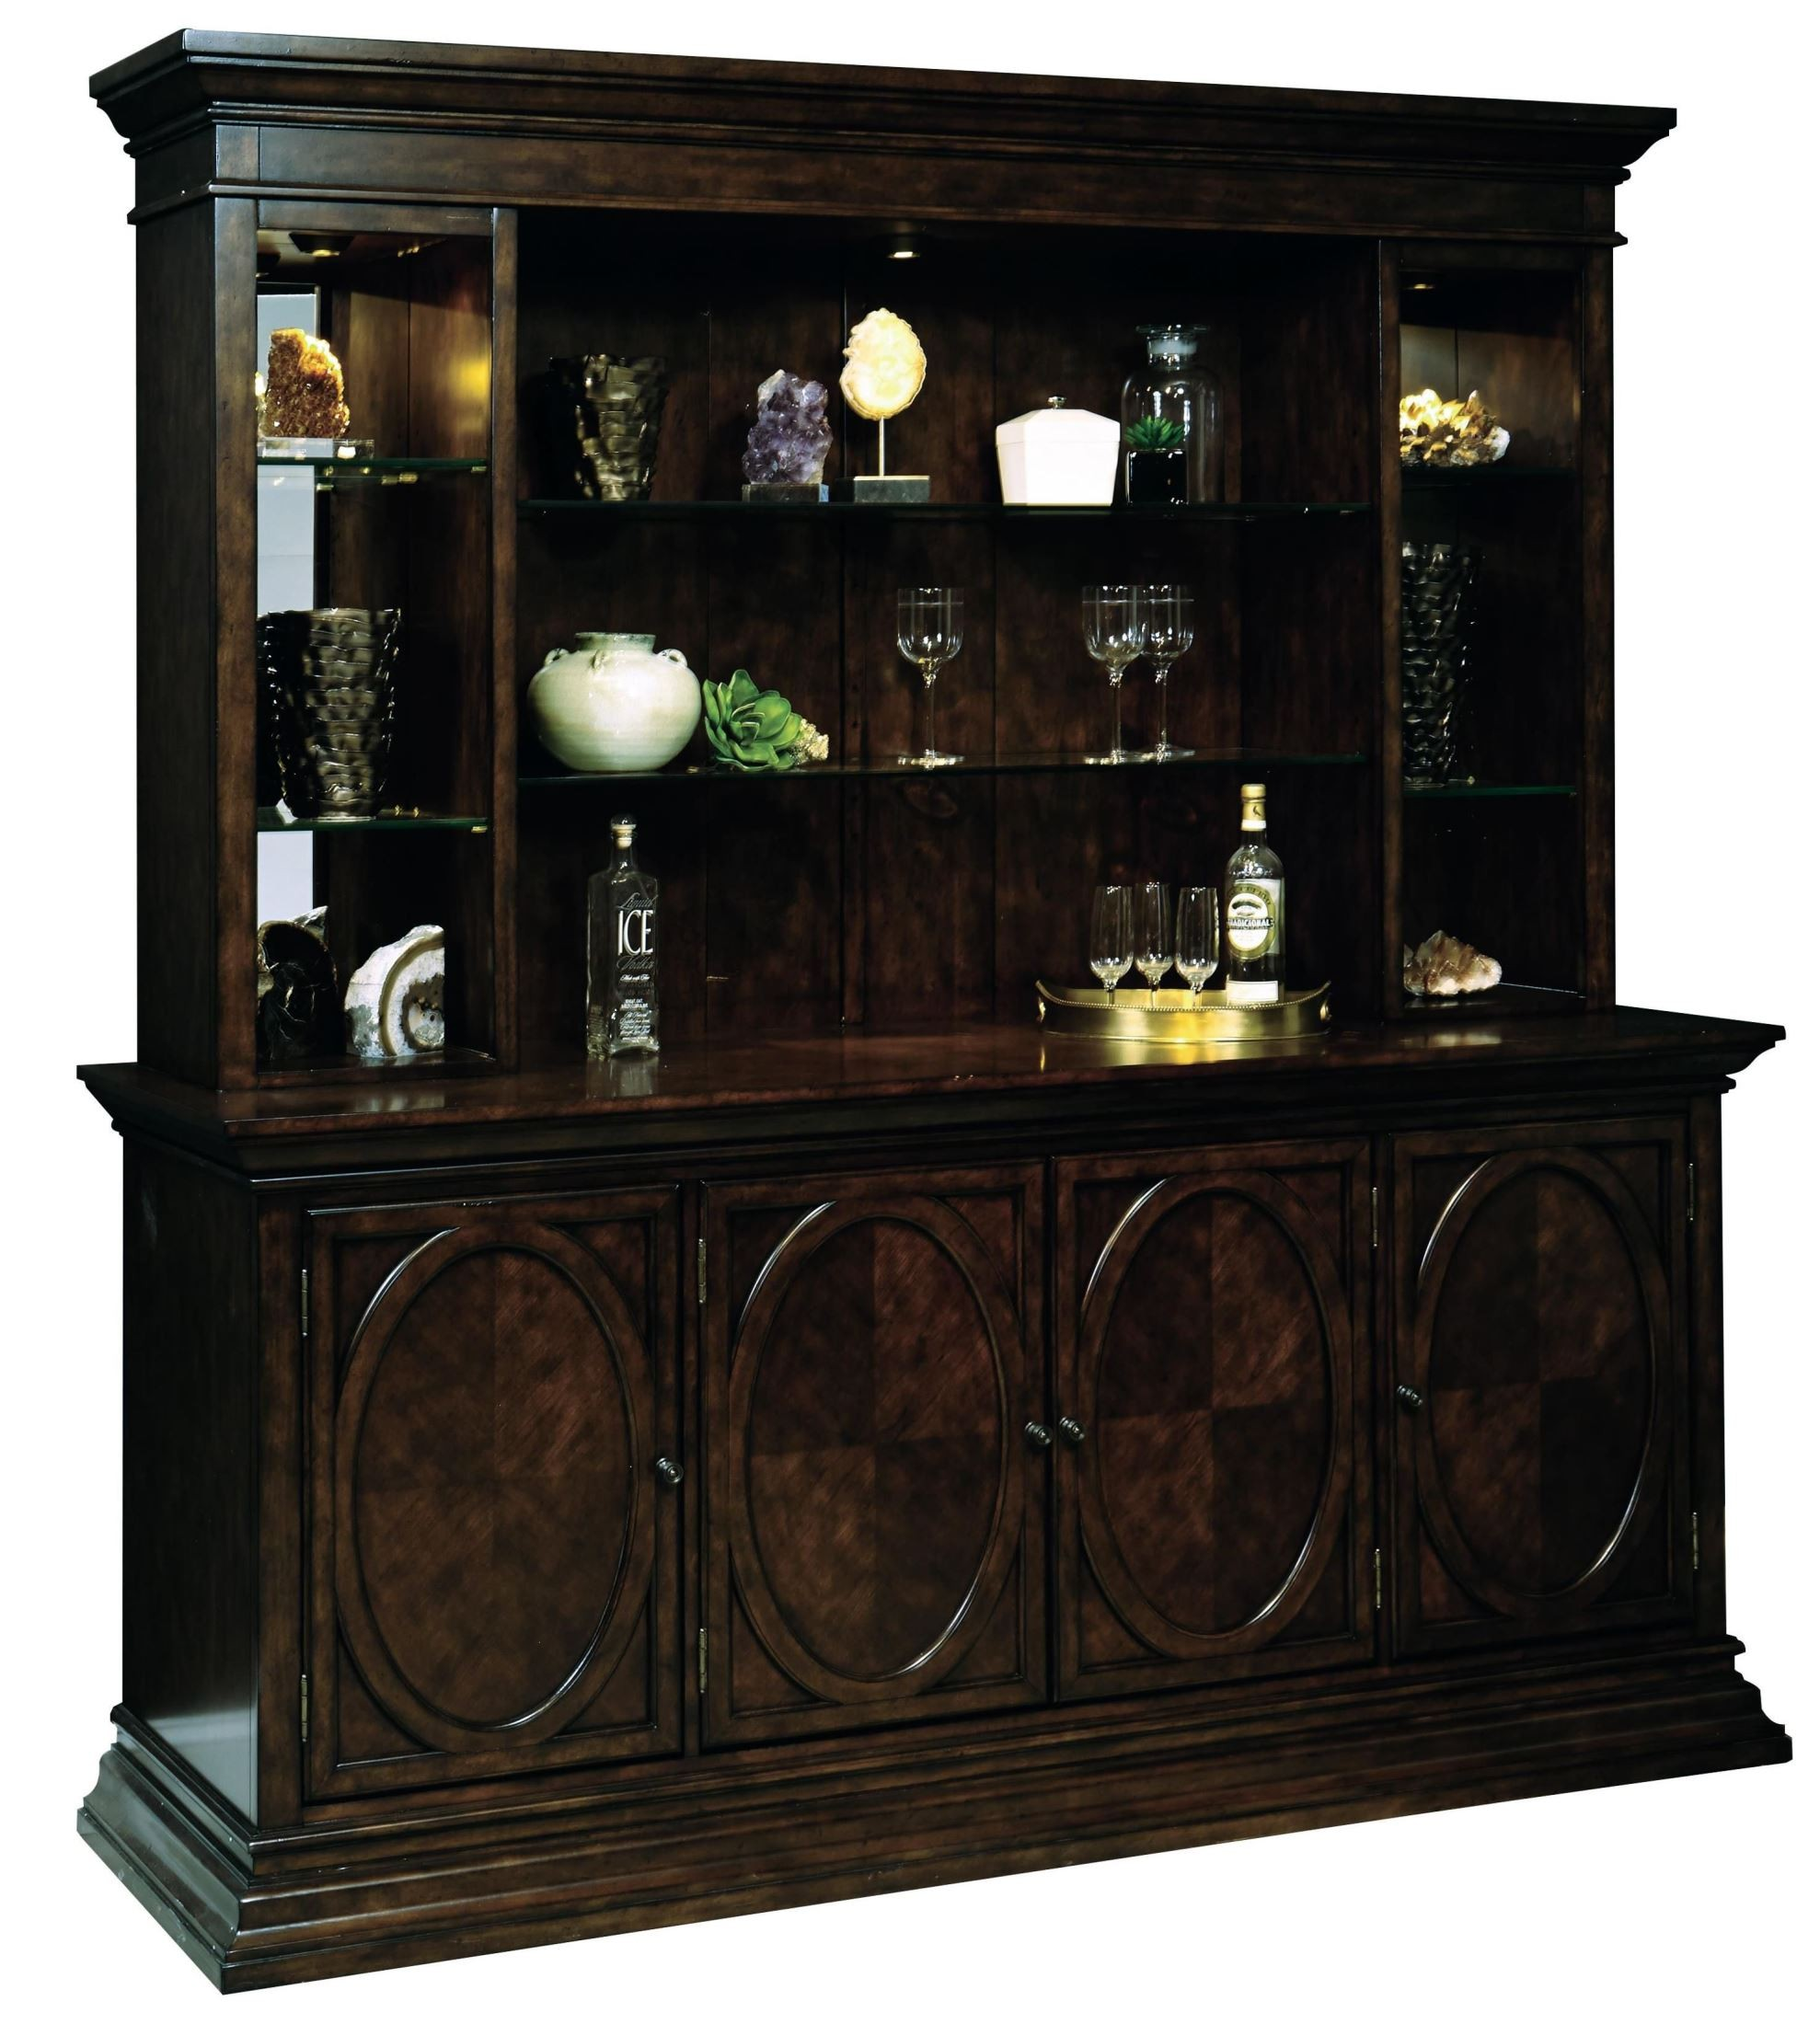 Westford Bar Cabinet With Piers From Pulaski (675912-14-13